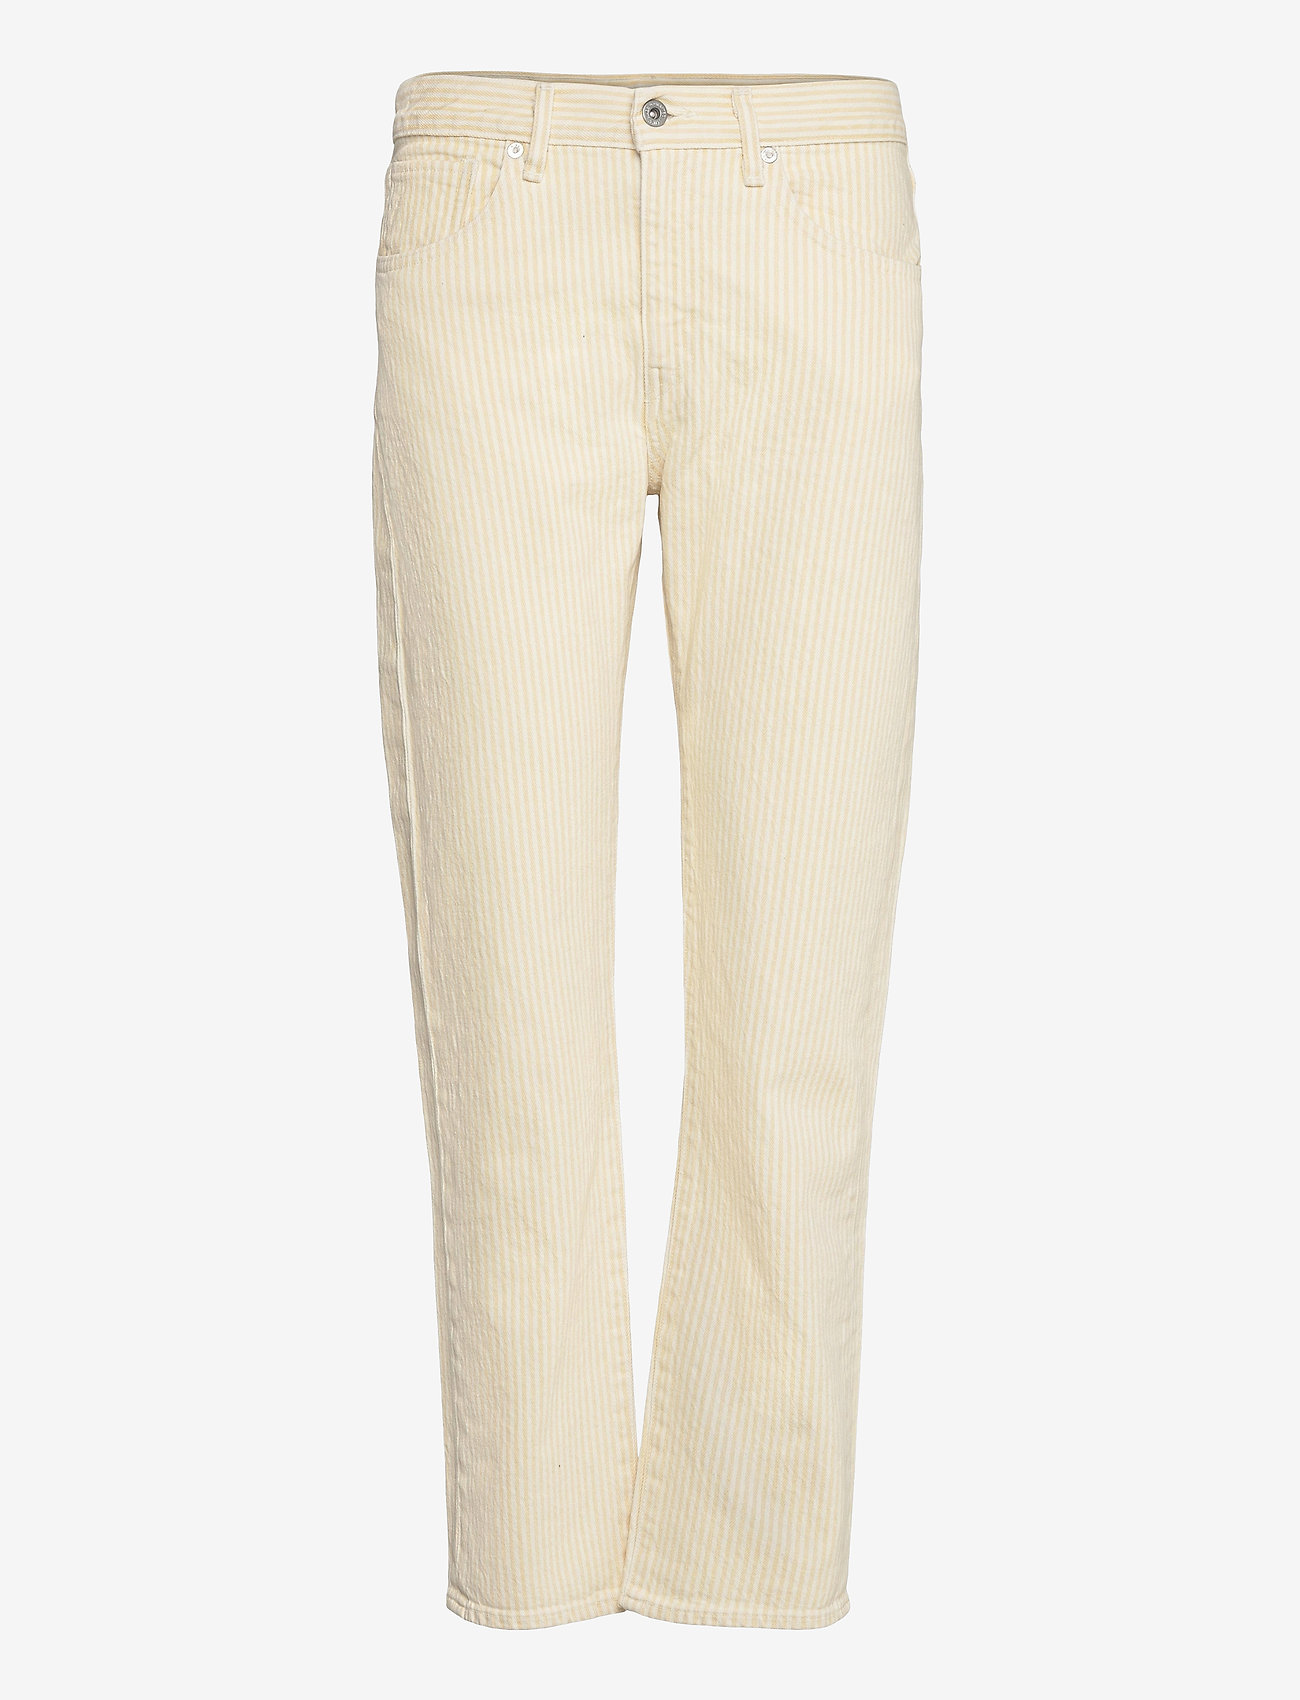 Levi's Made & Crafted - LMC PIPE STRAIGHT LMC SOLEIL - straight regular - yellows/oranges - 0